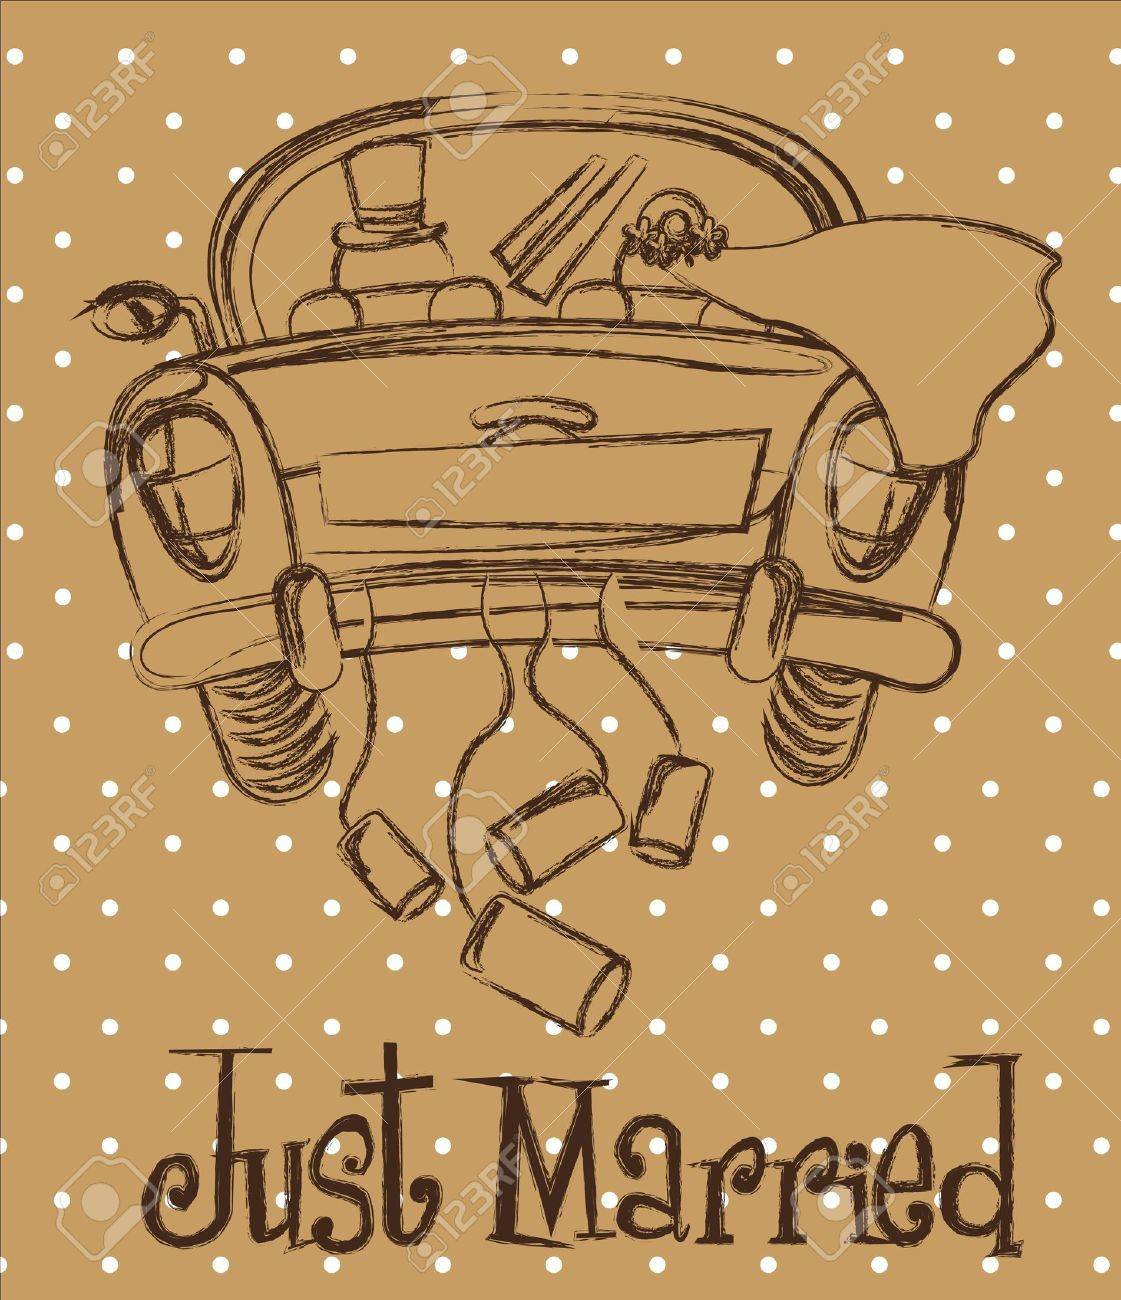 just married car over brown background, grunge - 14215141